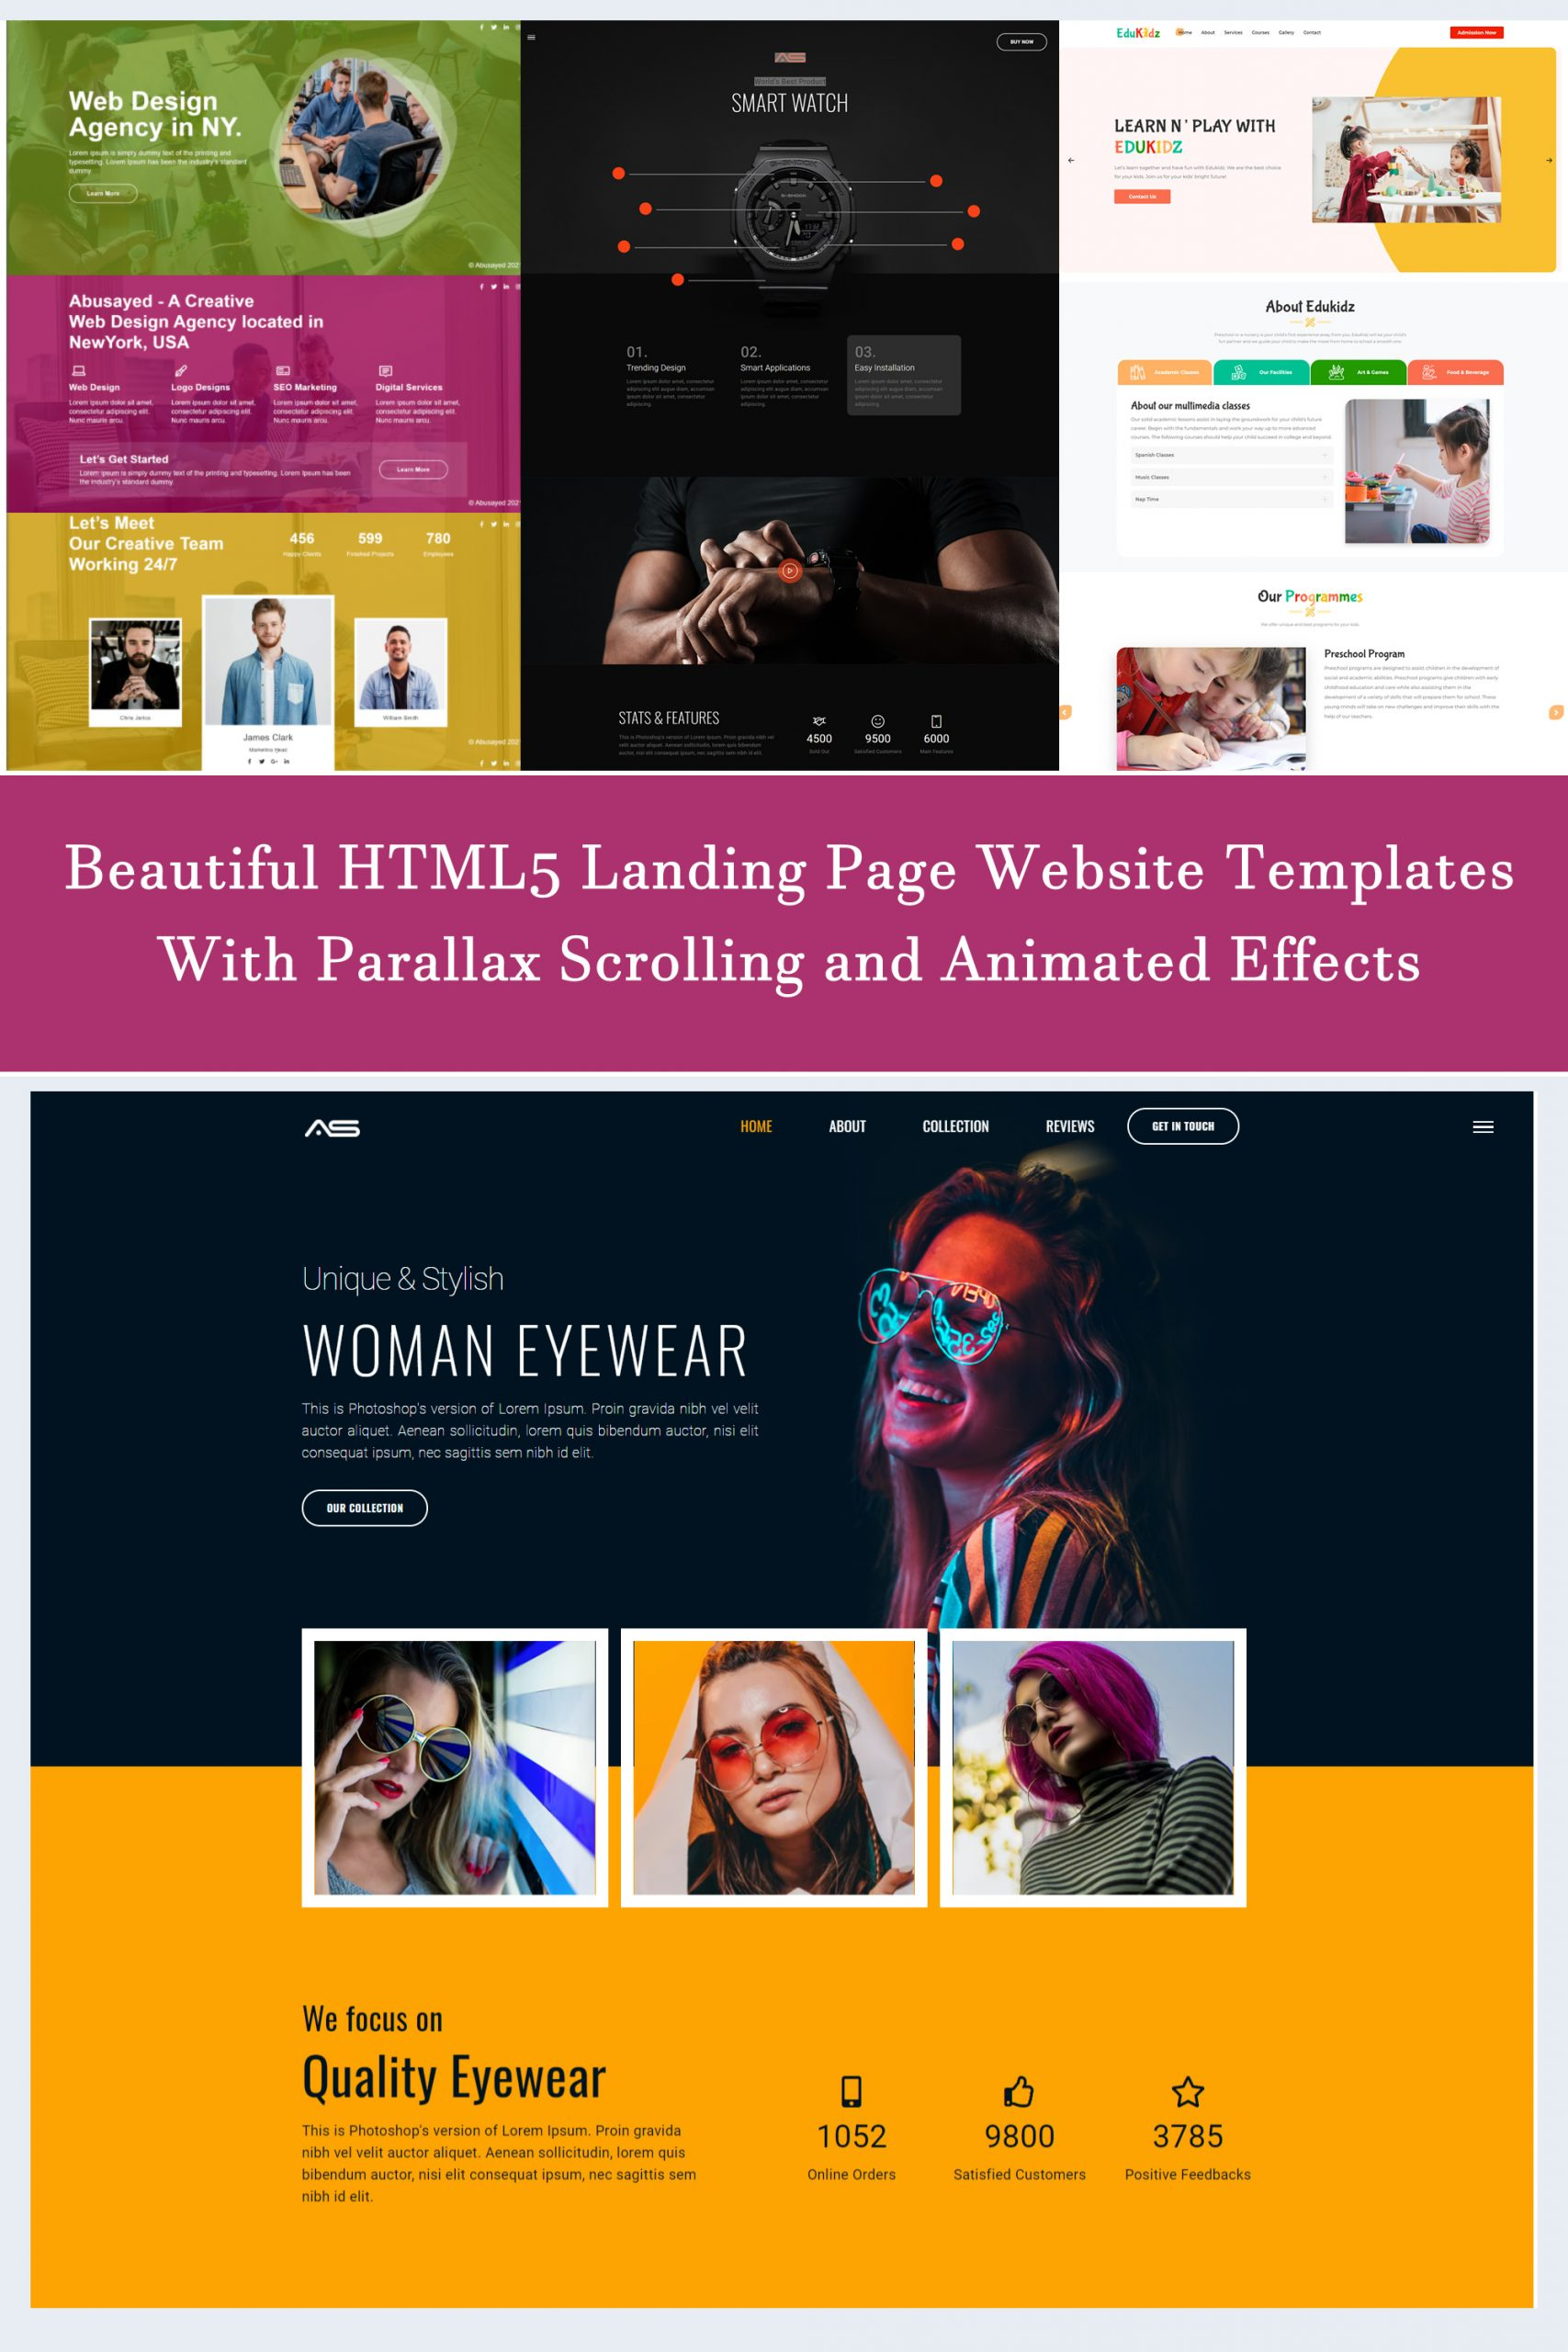 Beautiful Responsive HTML5 Landing Page Website Templates With Parallax Scrolling And Animated Effects